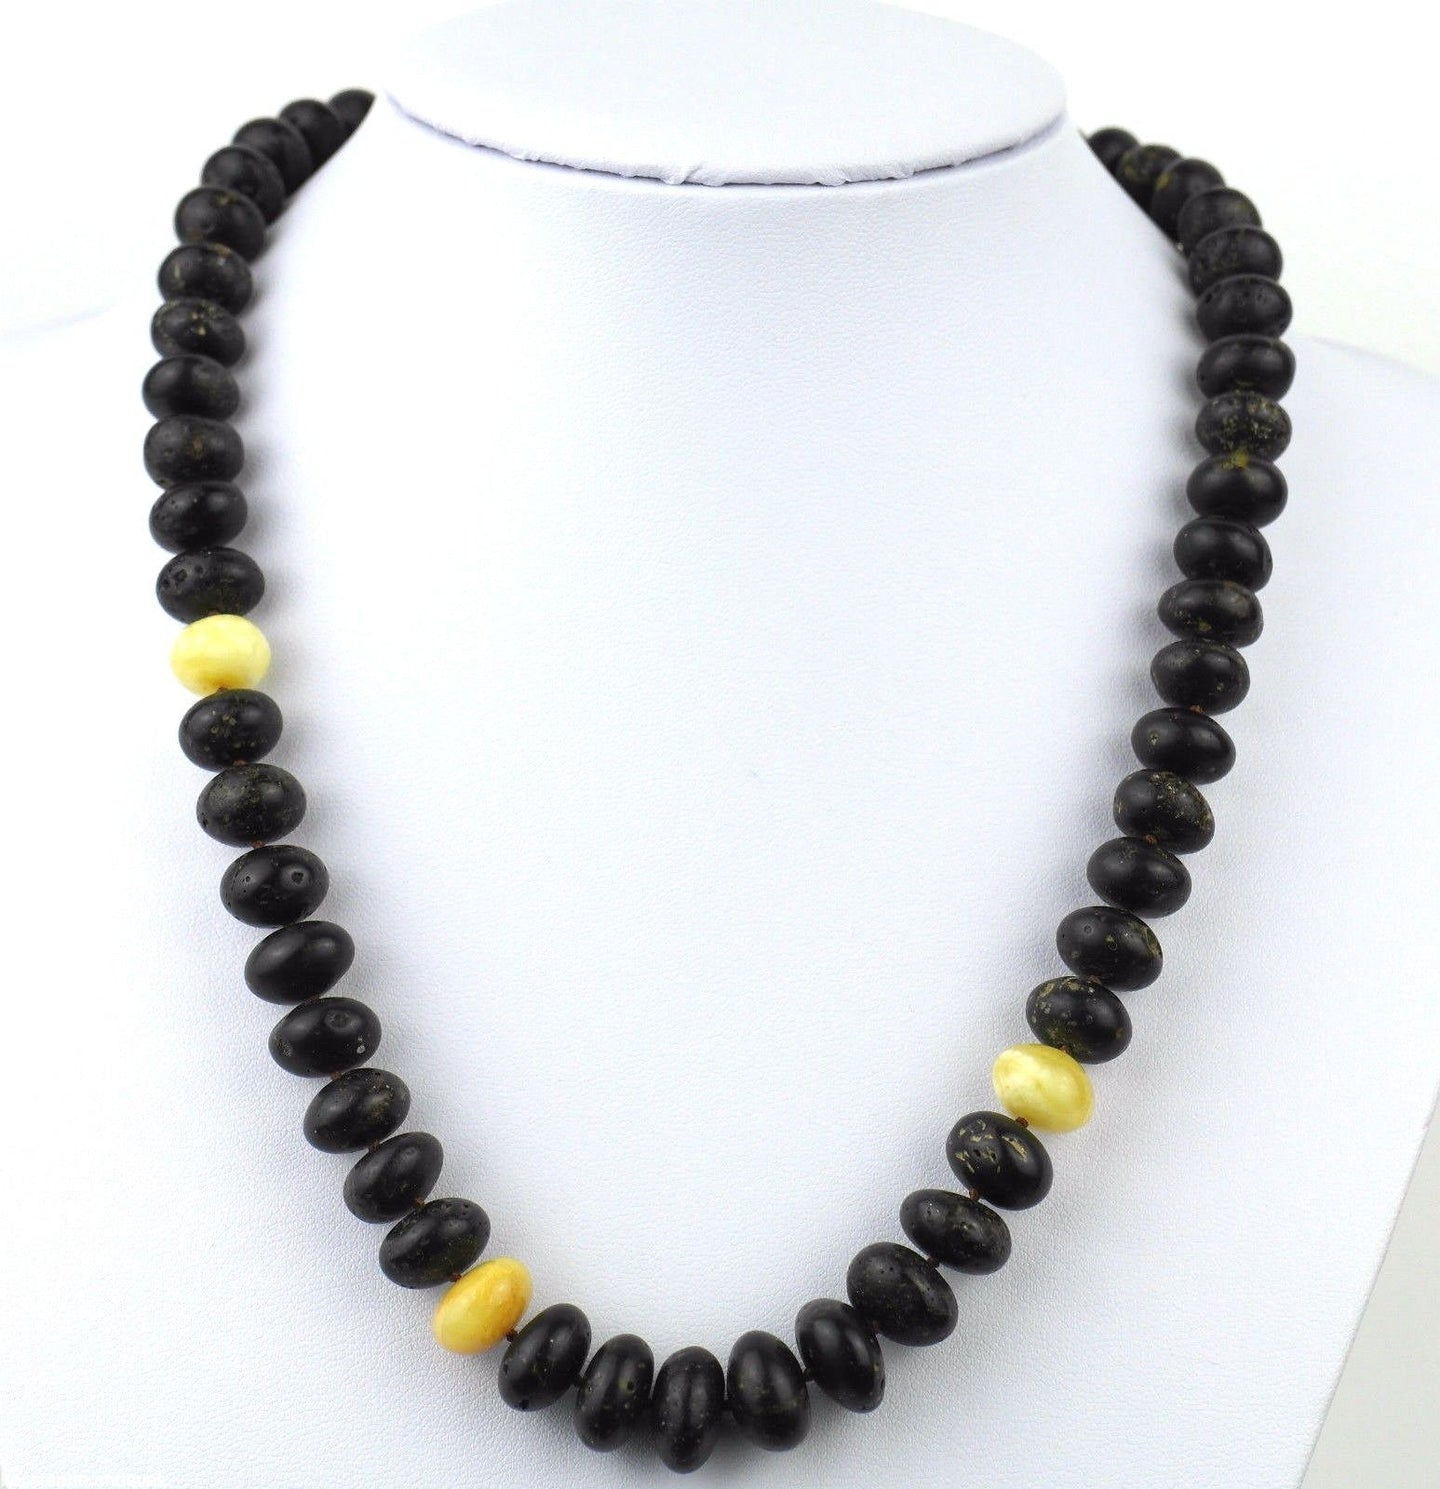 Polished raw Baltic Amber beads necklace White egg yolk earth blood